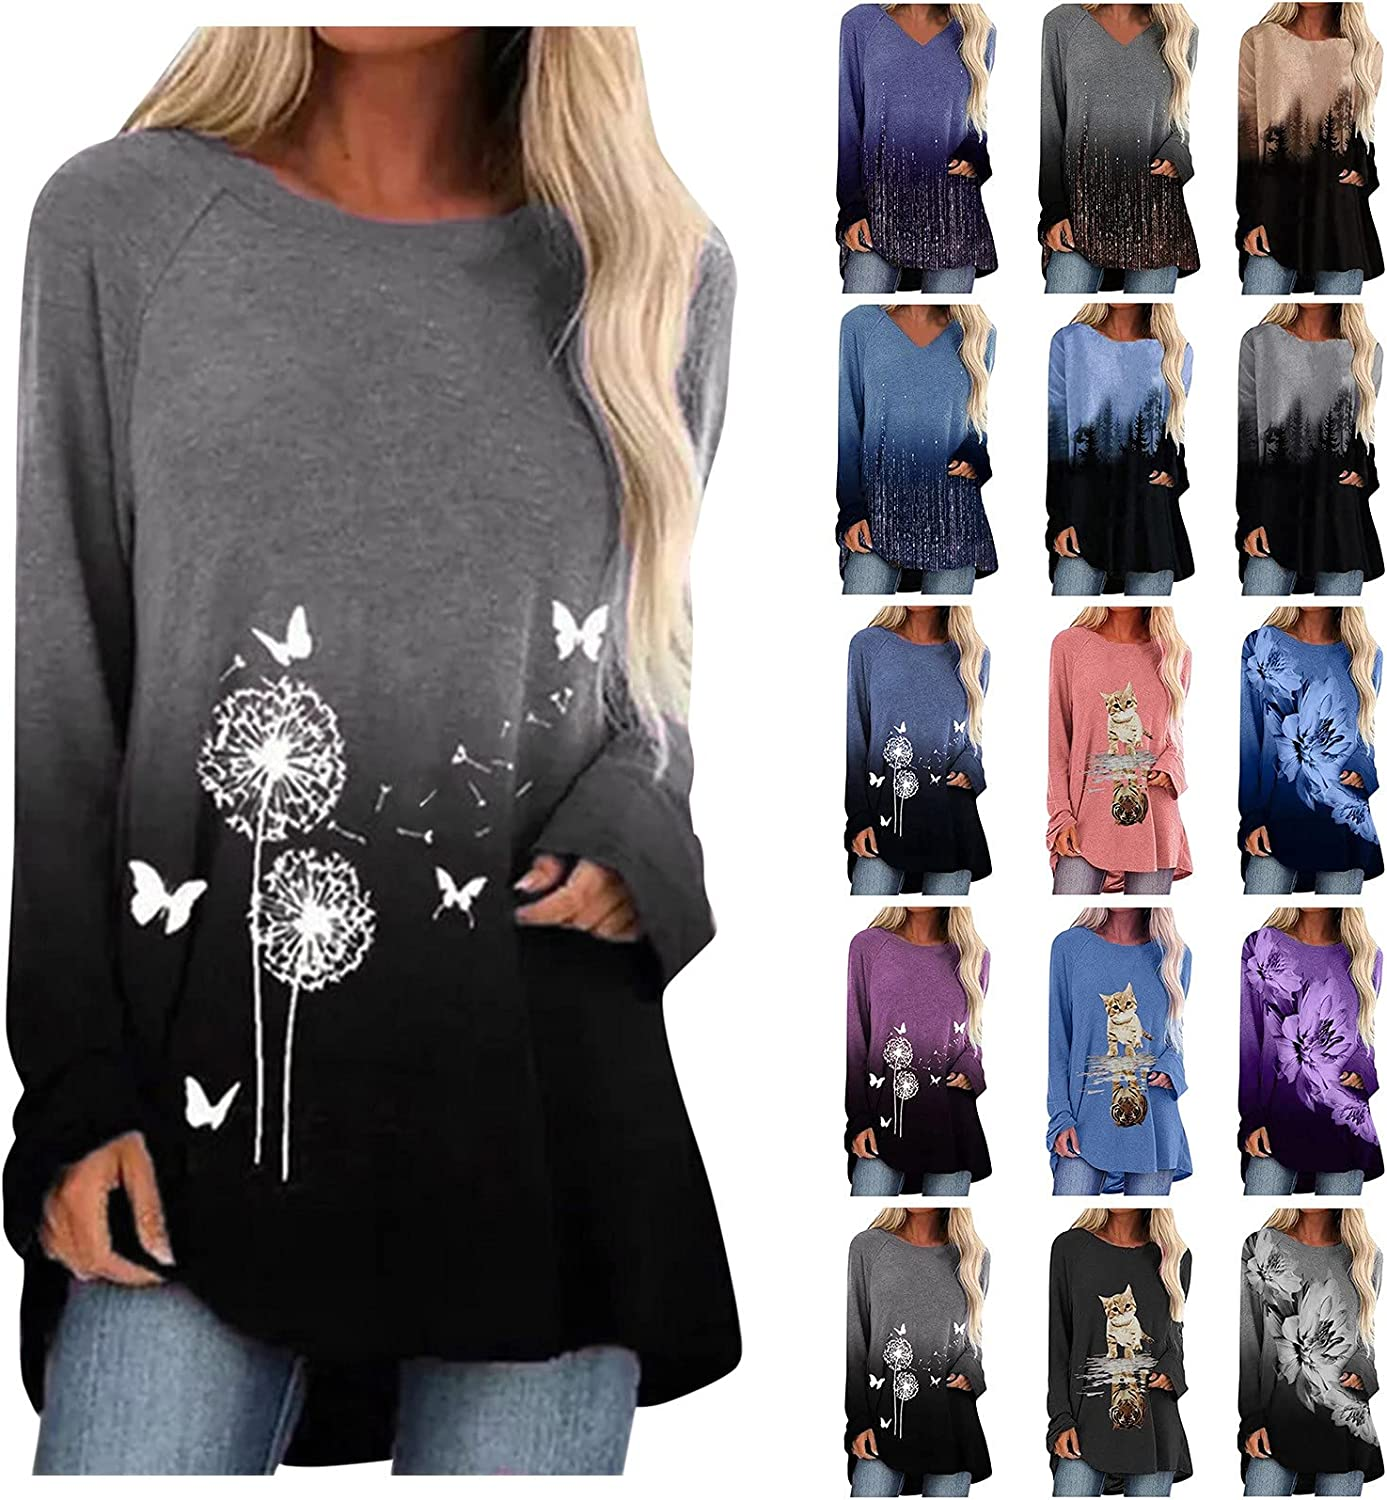 Womens Tops Tie Dye Gradient T-Shirts O Neck Long Sleeve Shirts Splicing Blouses Pullover Sweatshirts Plus Size